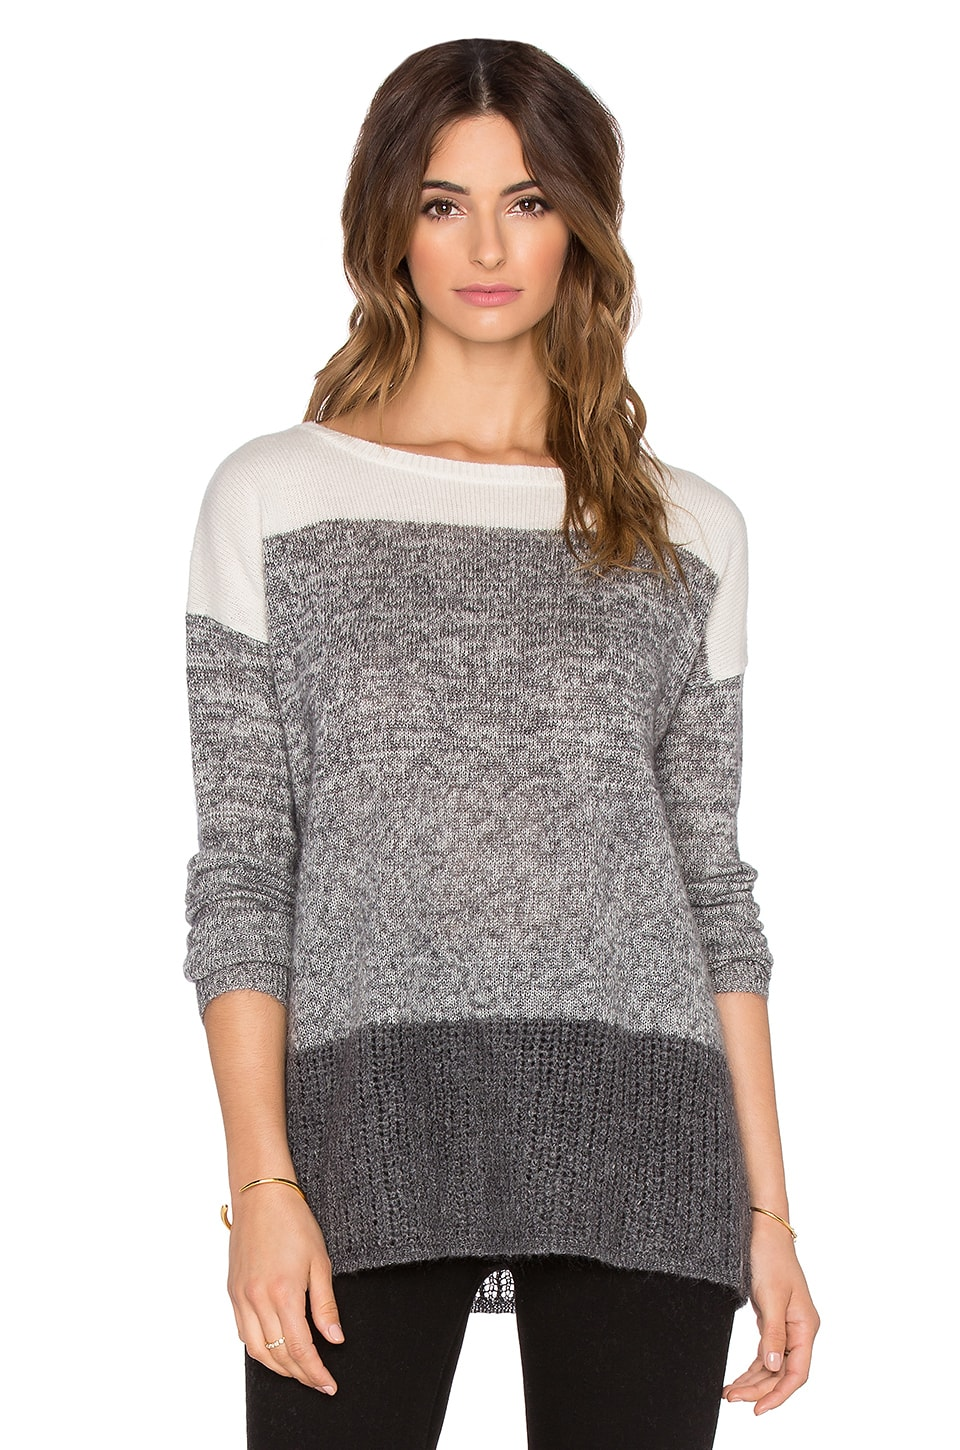 LEO & SAGE Ombre Boatneck Sweater in Granite Fade